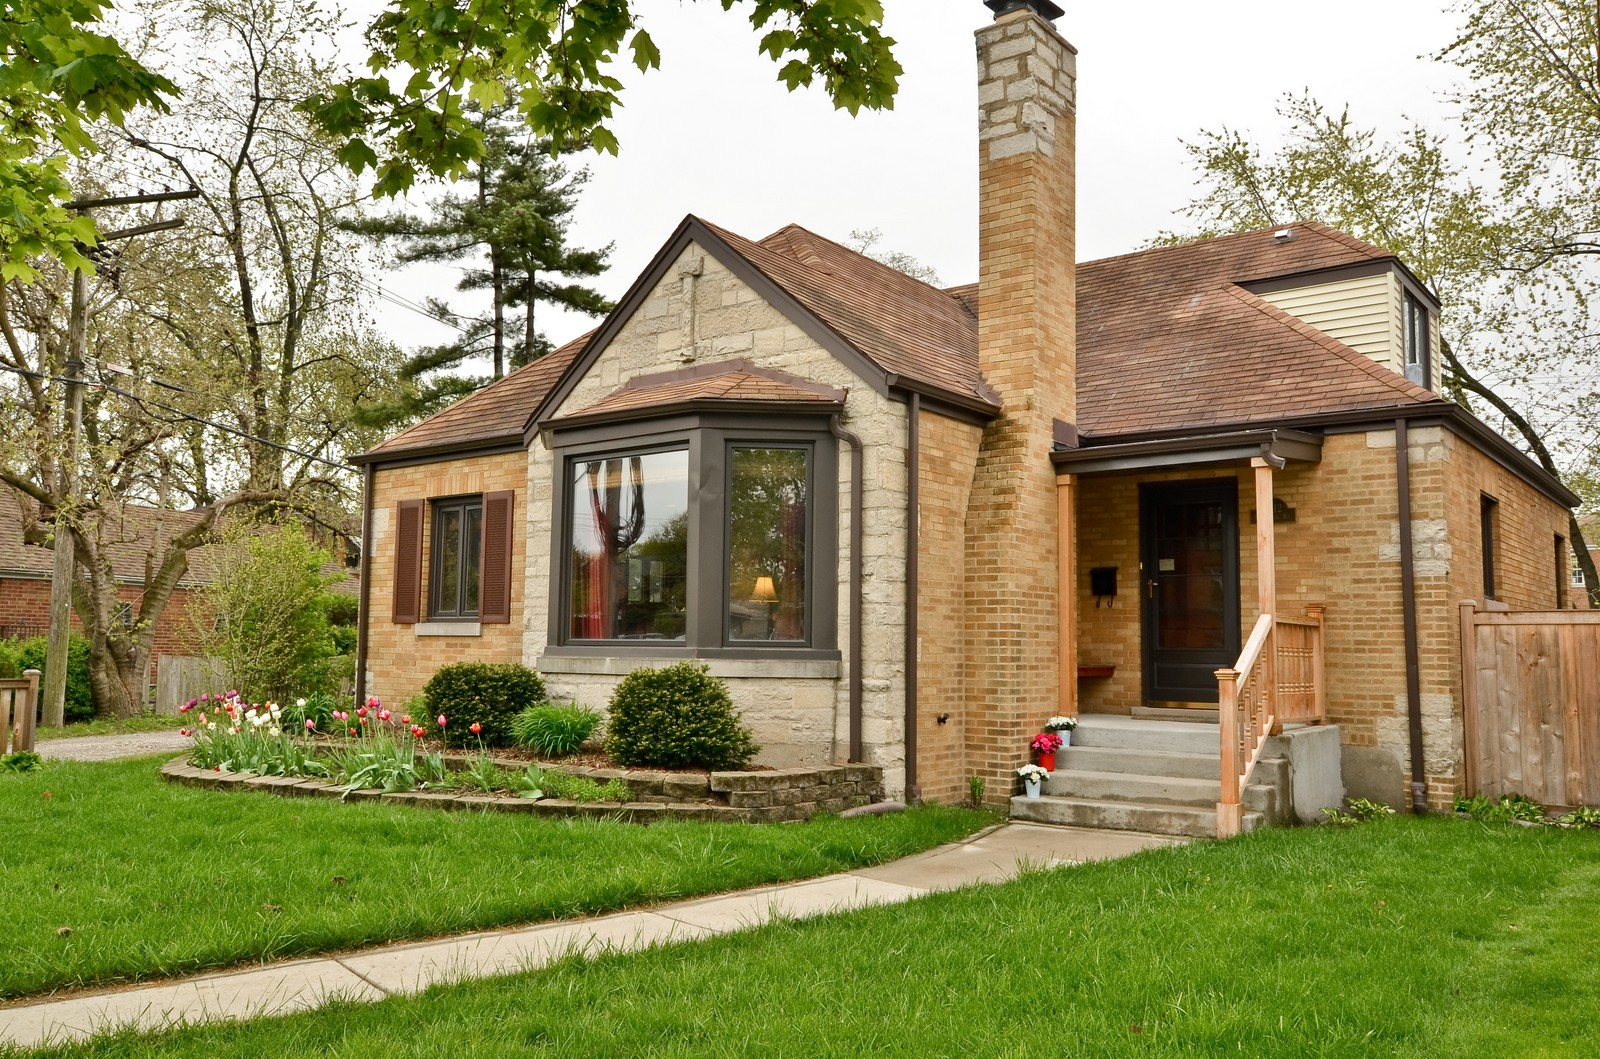 Real Estate Photography - 6712 N Dowagic, Chicago, IL, 60646 - Front View